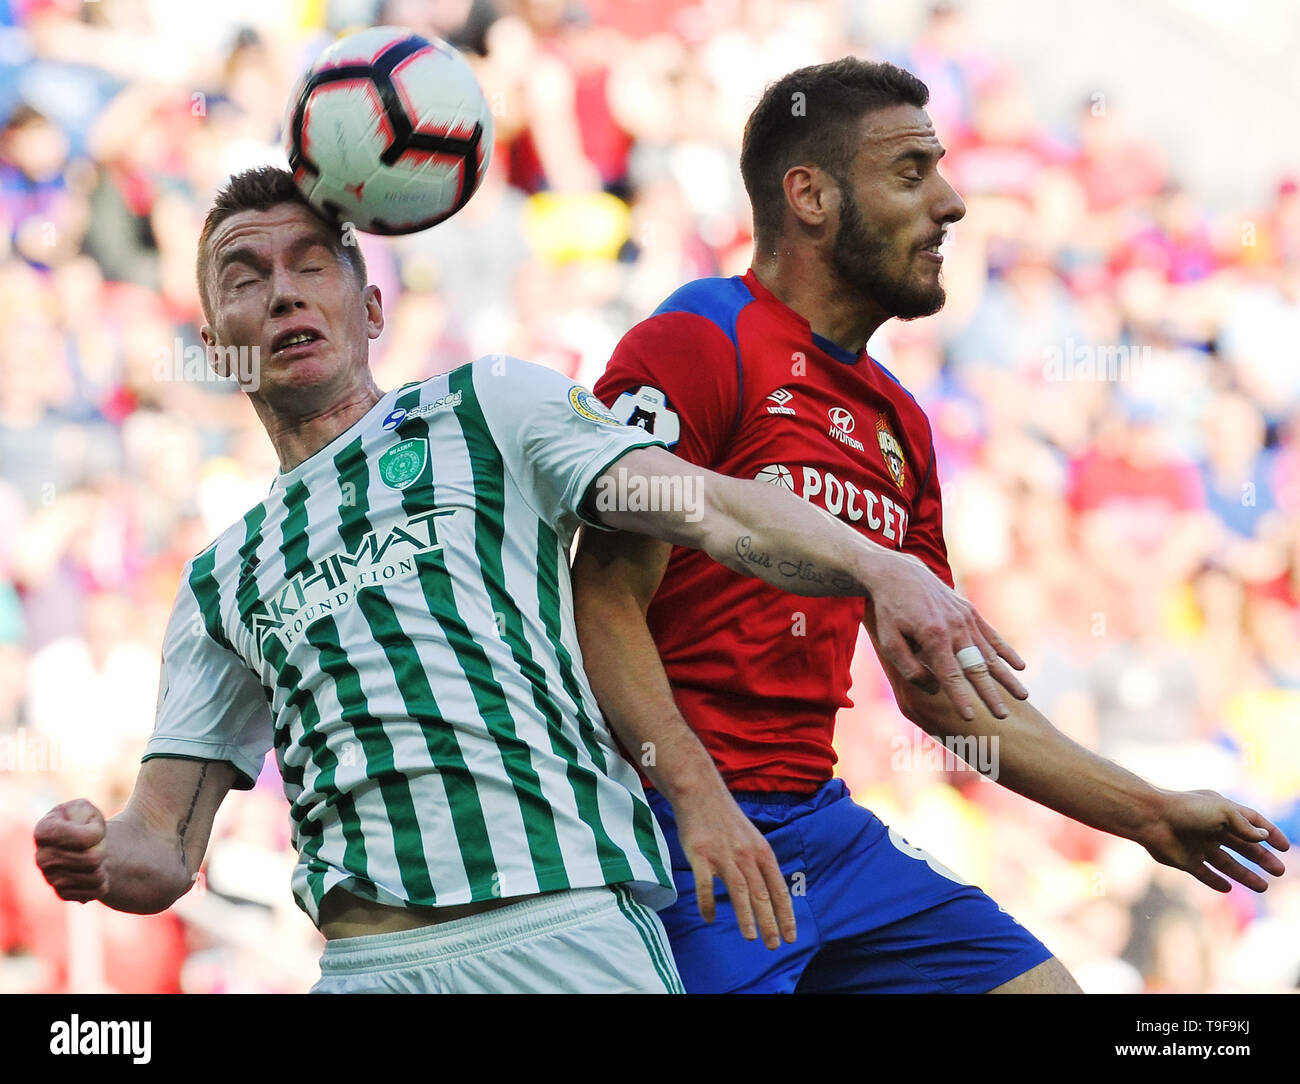 Moscow, Russia. 18th May, 2019. MOSCOW, RUSSIA - MAY 18: Nikola Vlasic of PFC CSKA Moscow and Andrei Semyonov of FC Akhmat Grozny vie for the ball during the Russian Football League match between PFC CSKA Moscow and FC Akhmat Grozny at Arena CSKA stadium on May 18, 2019 in Moscow, Russia. (Photo by Epsilon/Getty Images) Credit: ITAR-TASS News Agency/Alamy Live News - Stock Image